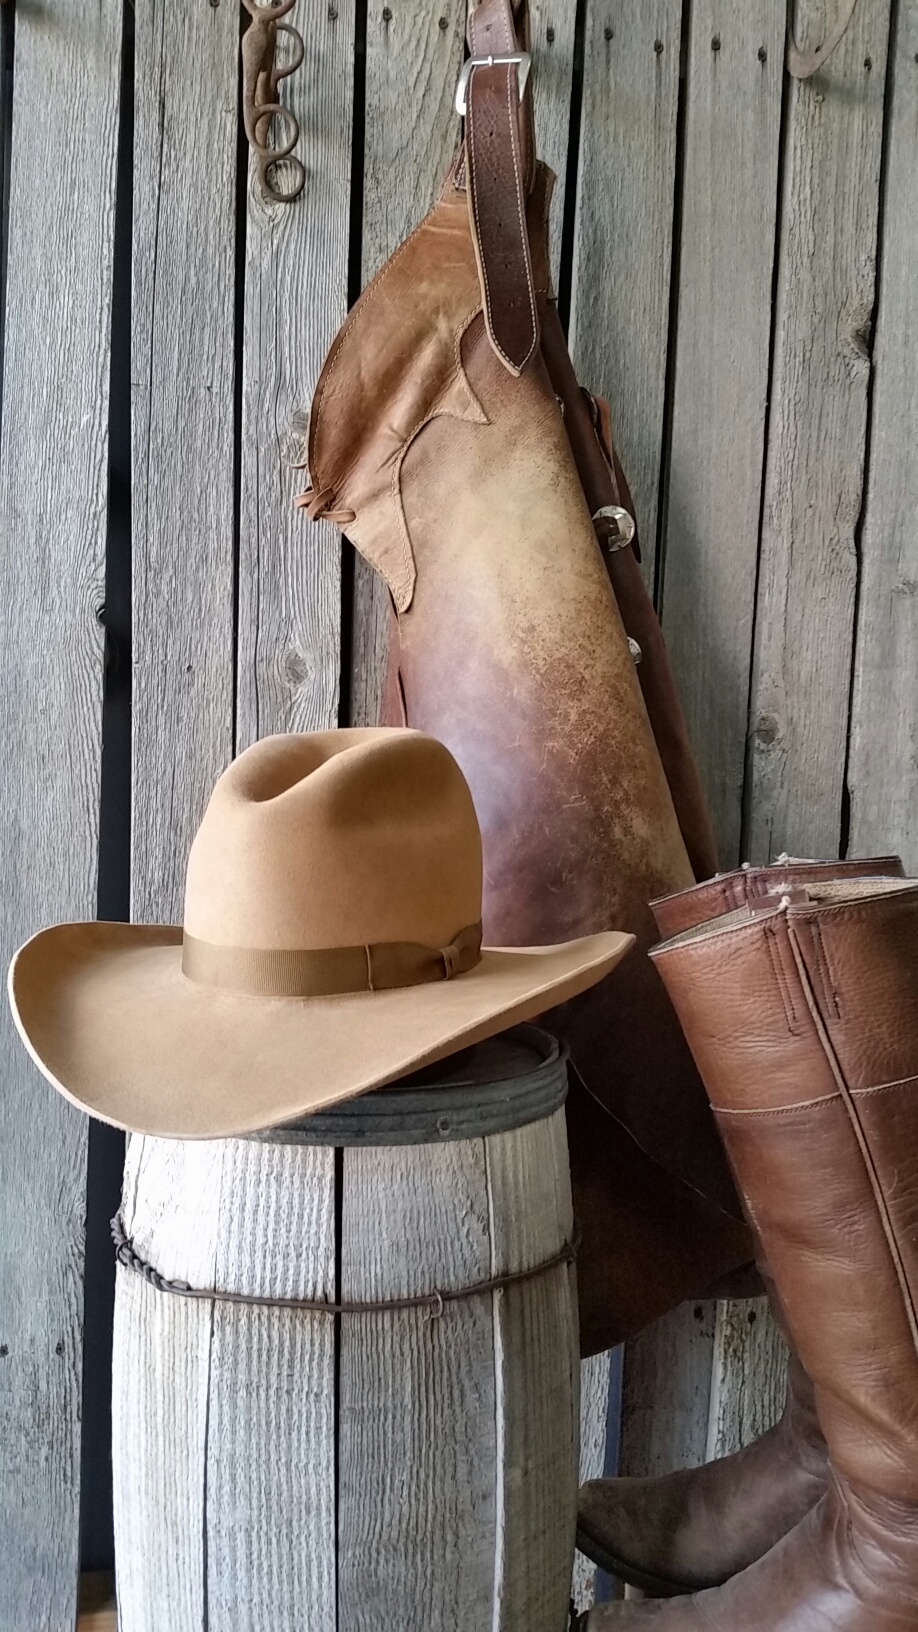 fe9baae6 ... Gus Camel Shads Camel Puncher leather with buckle hat band_crop